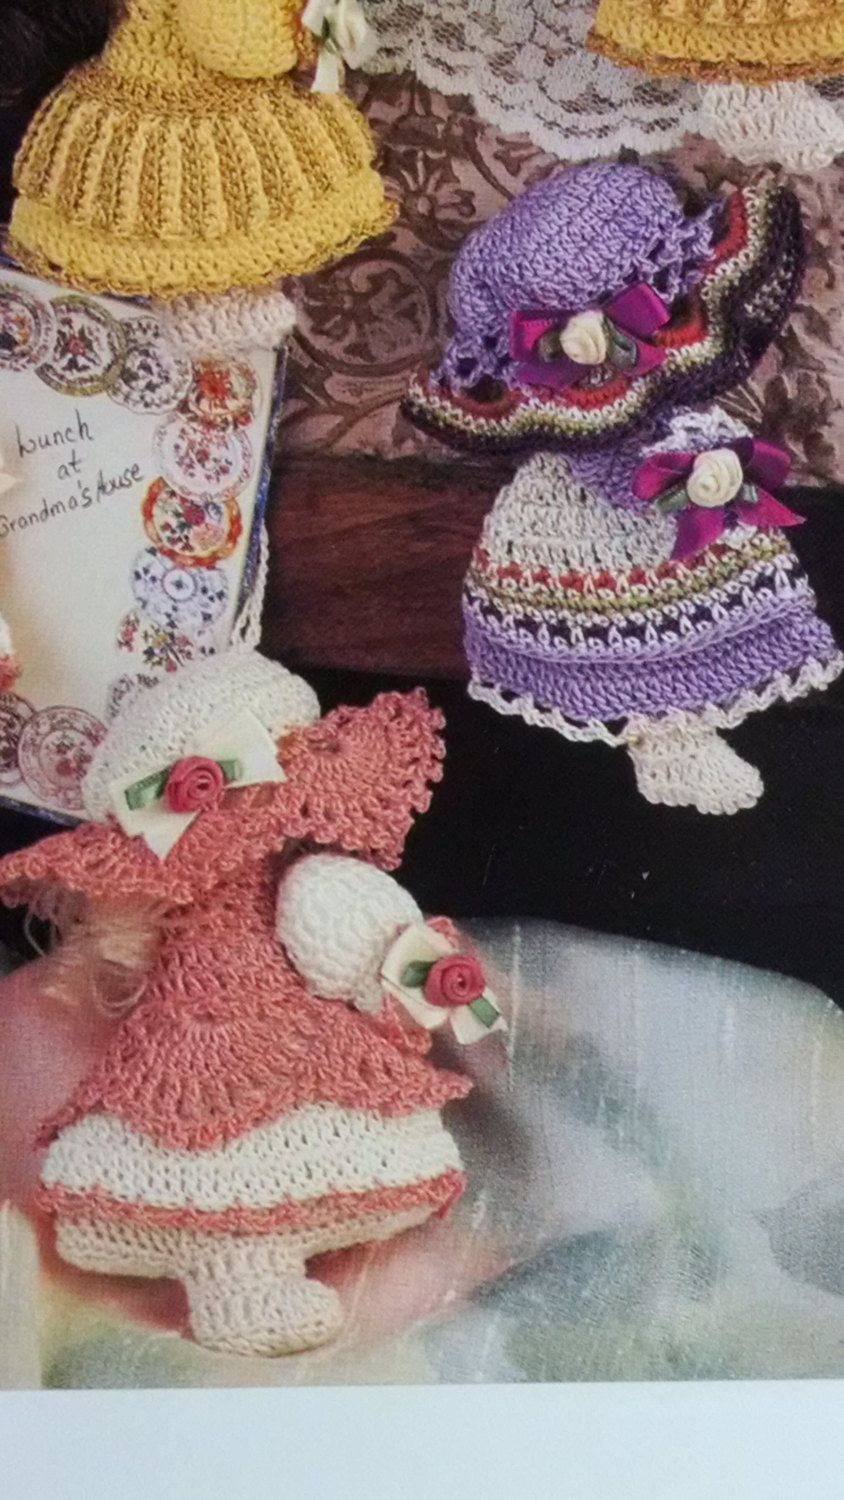 Crochet pattern book annies attic 878501 thread crochet crochet pattern book annies attic 878501 thread crochet sunbonnet doll by quiltingthreads bankloansurffo Image collections